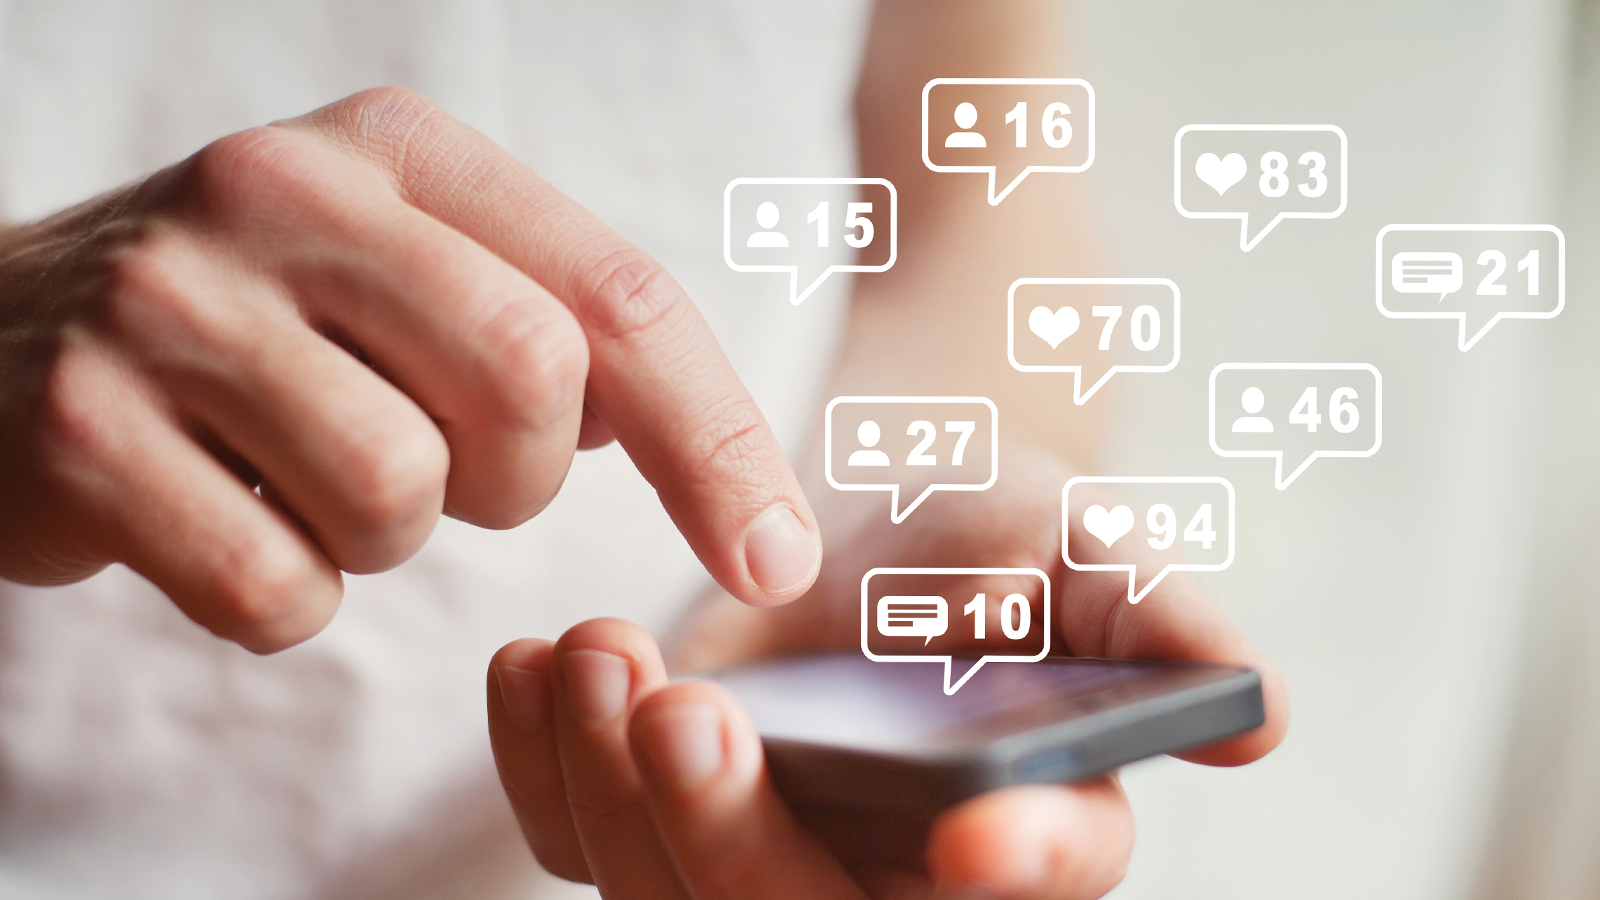 How to CalculateSocial Media Engagement: A Math Activity